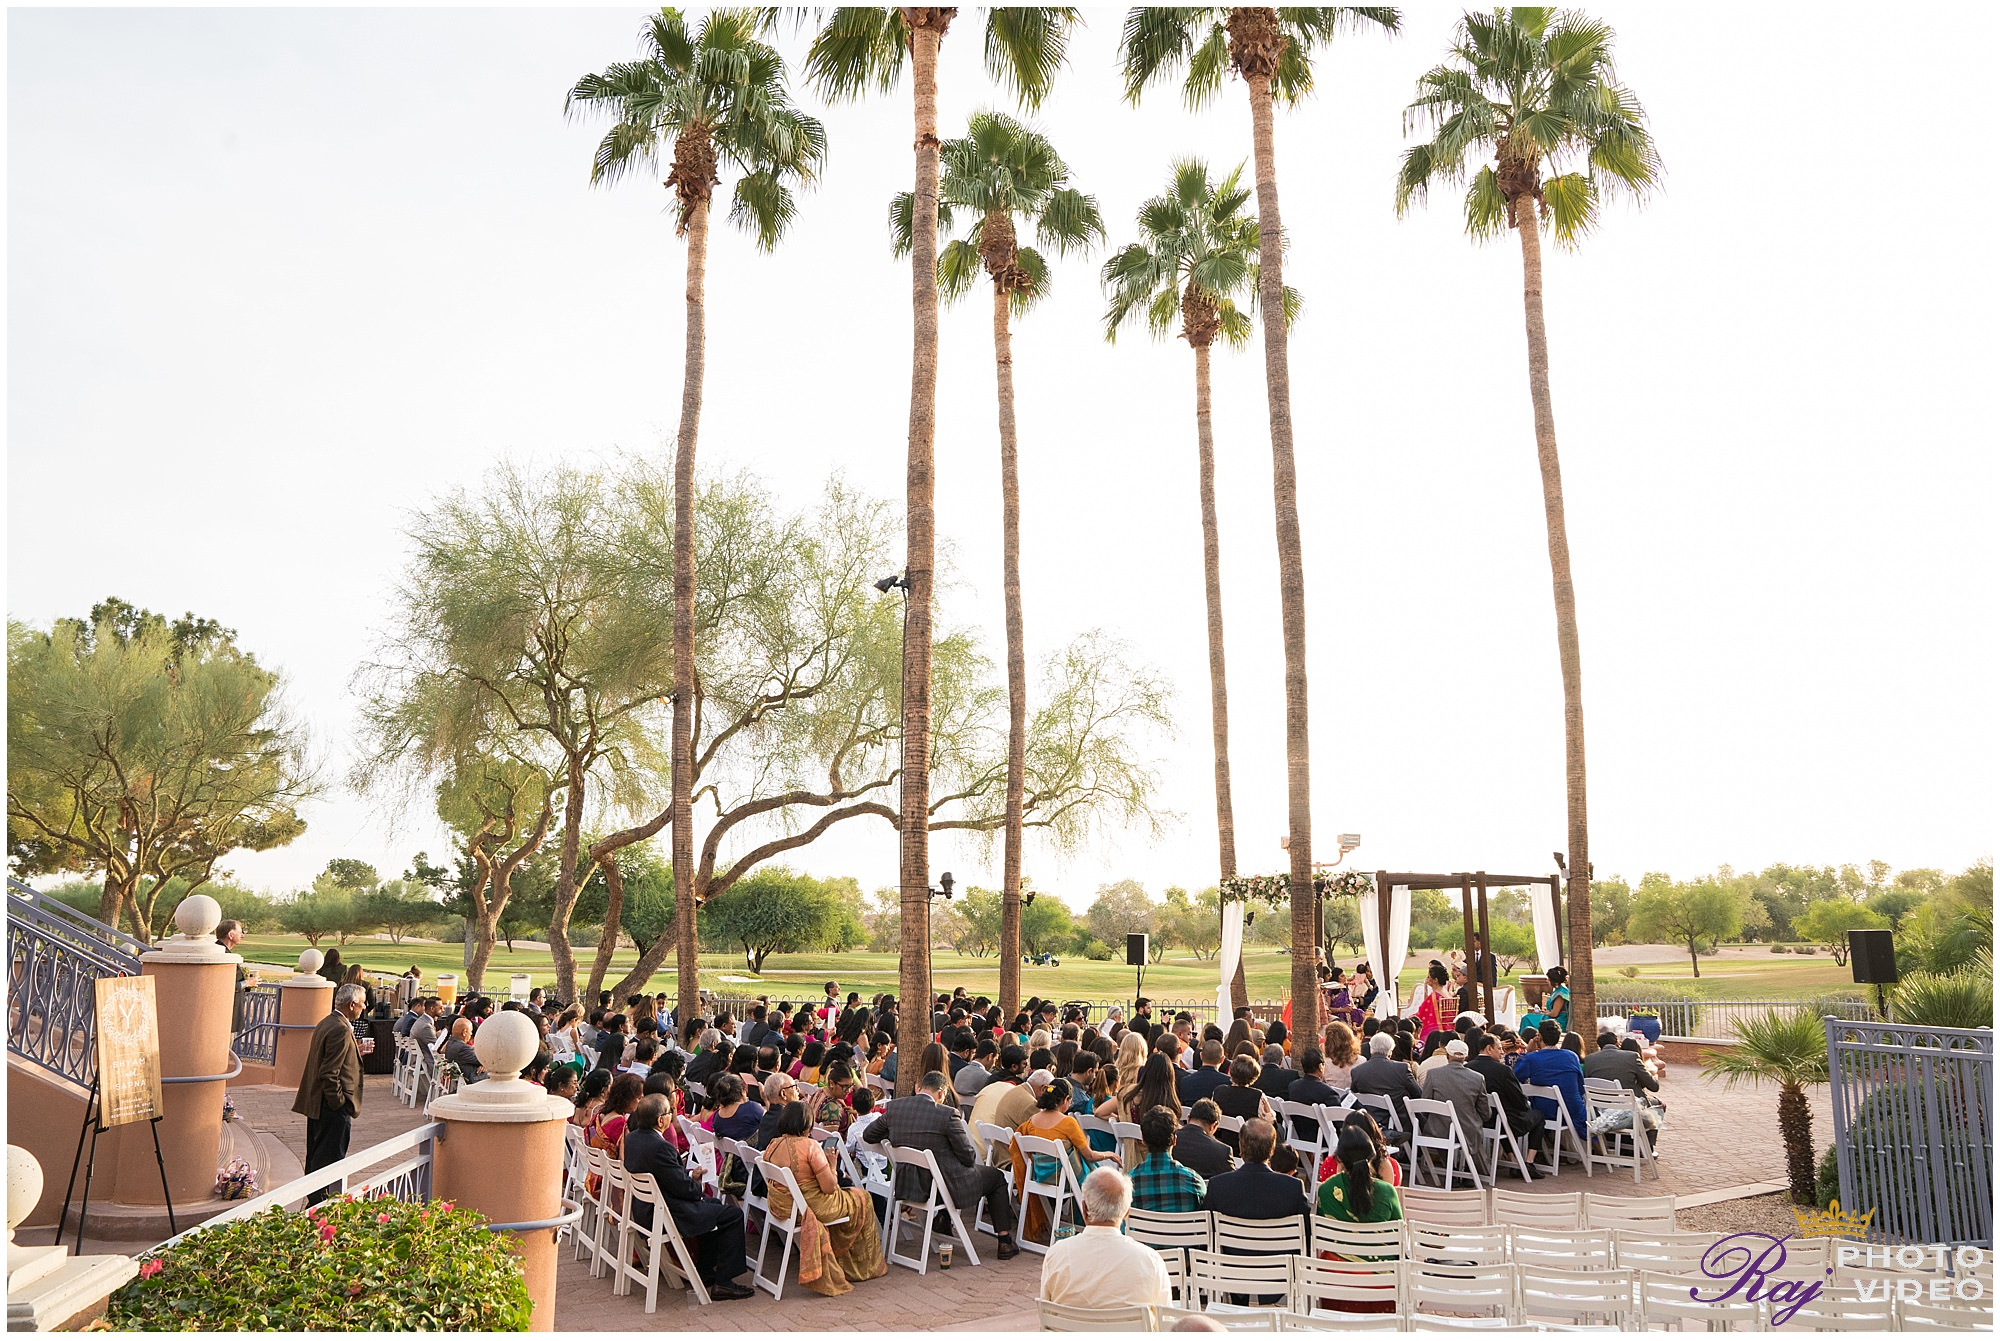 Scottsdale_Marriott_at_McDowell_Mountains_Arizona_Indian_Wedding_Sapna_Shyam-53.jpg